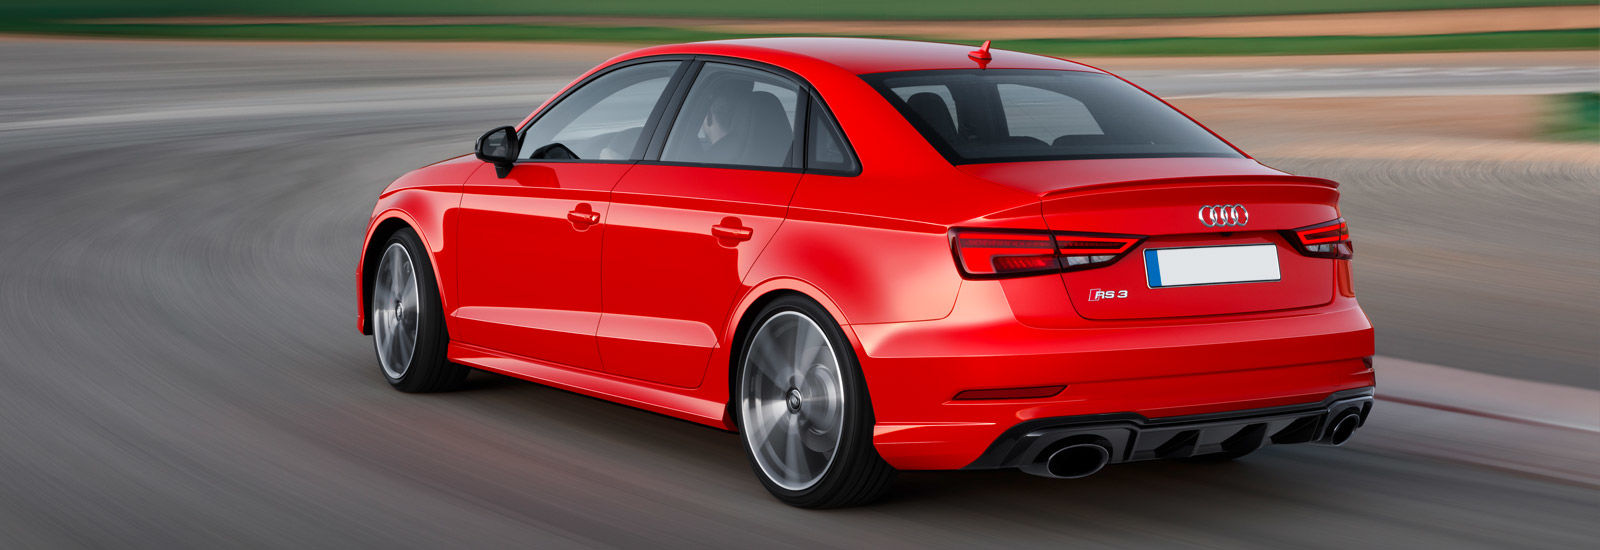 New Audi A3 Sportback Review  carwow